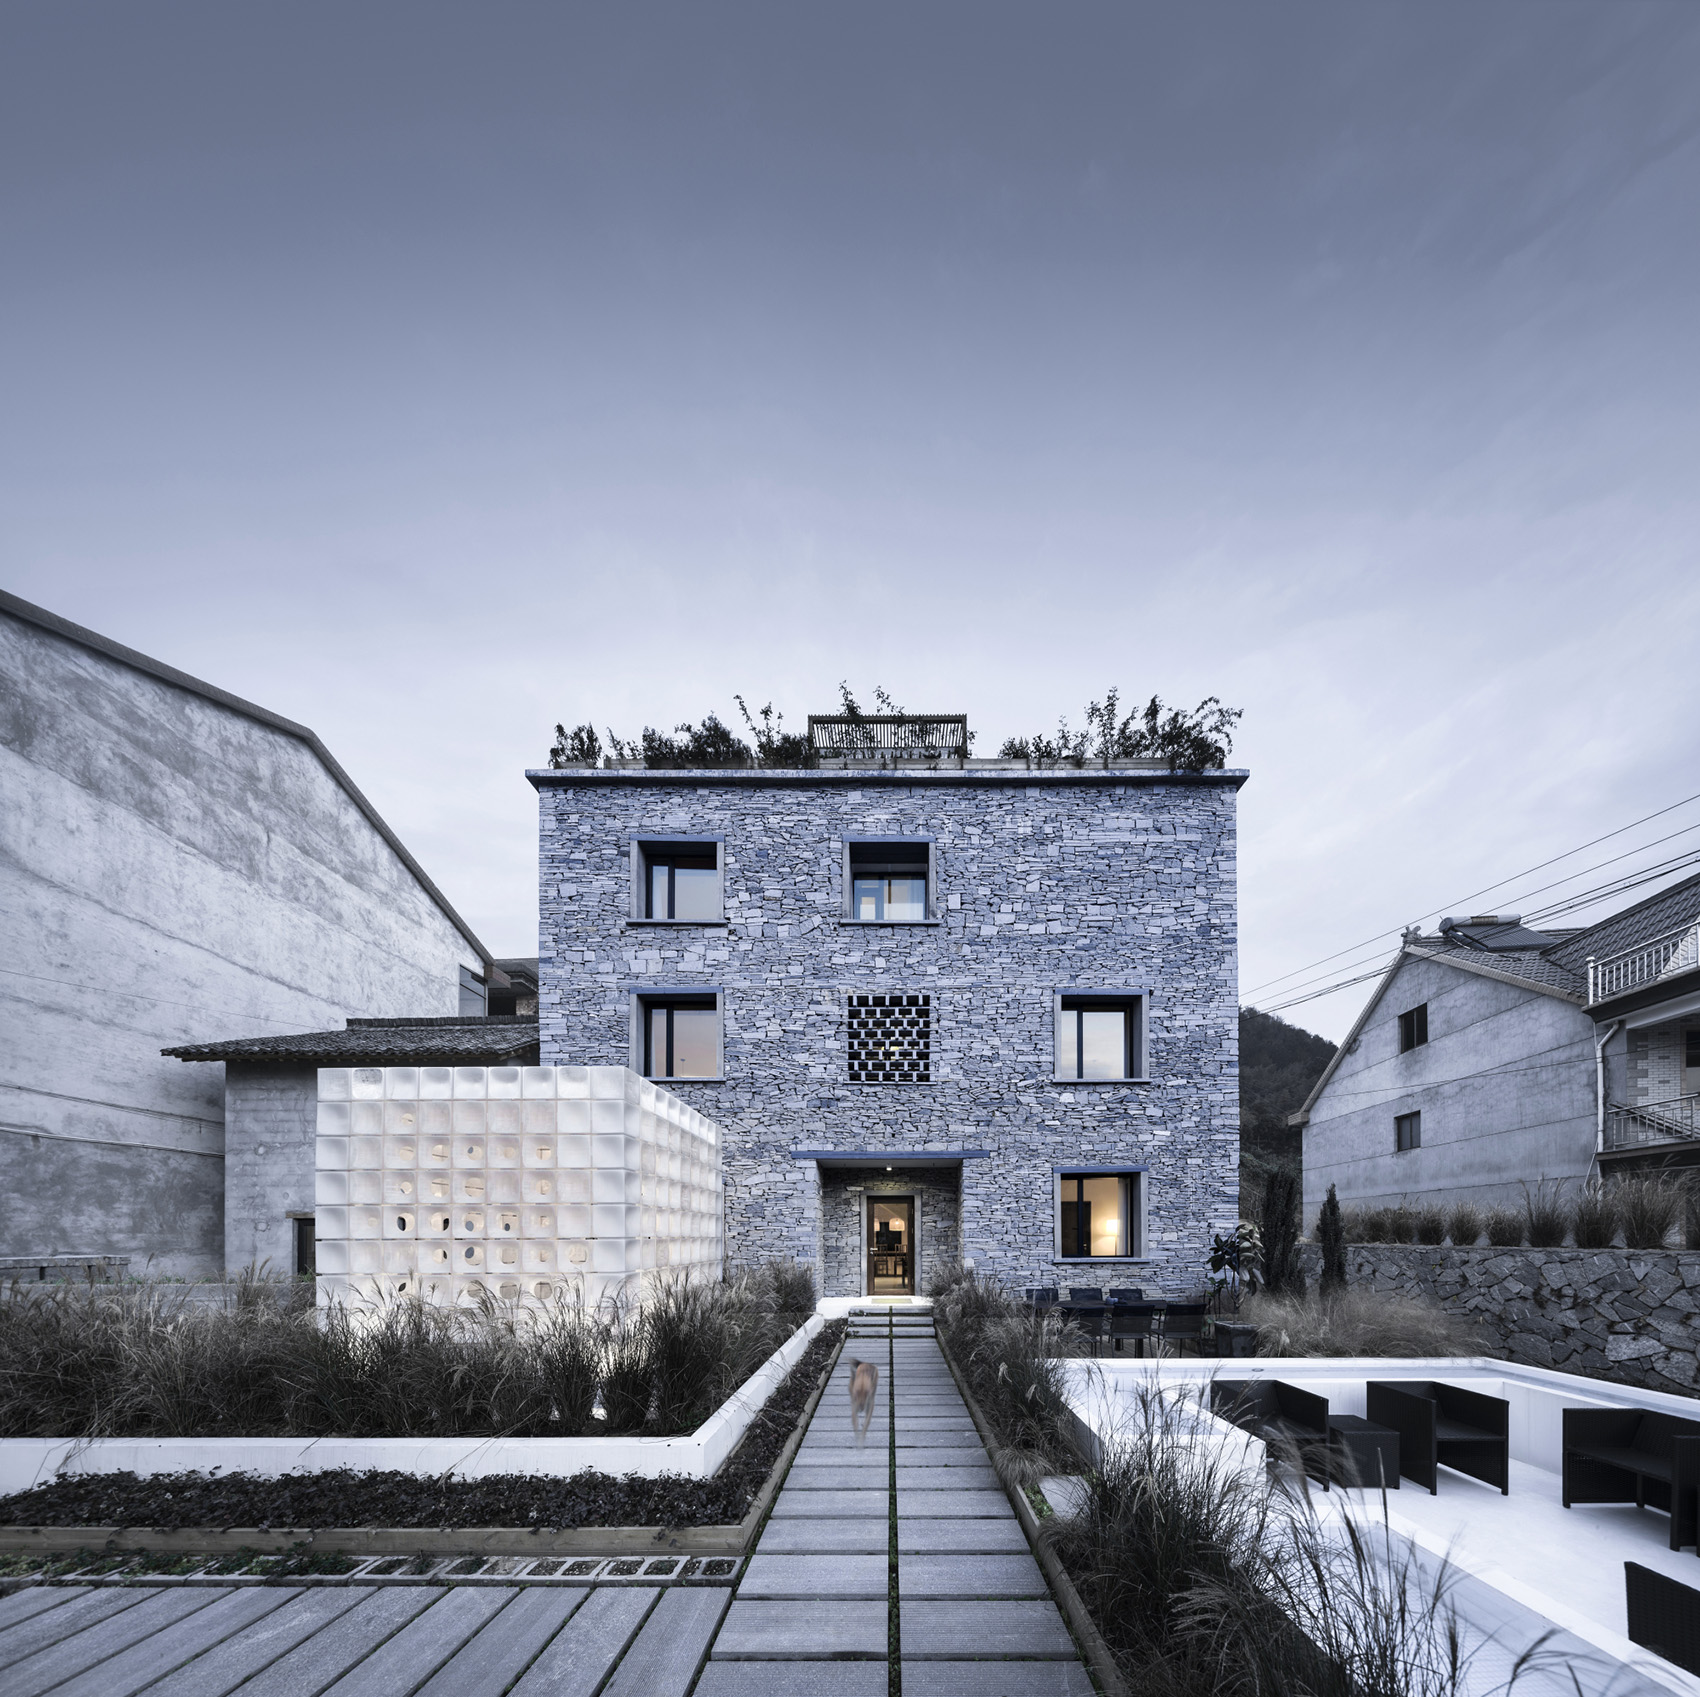 040-LEI-House-China-by-AZL-Architects.jpg